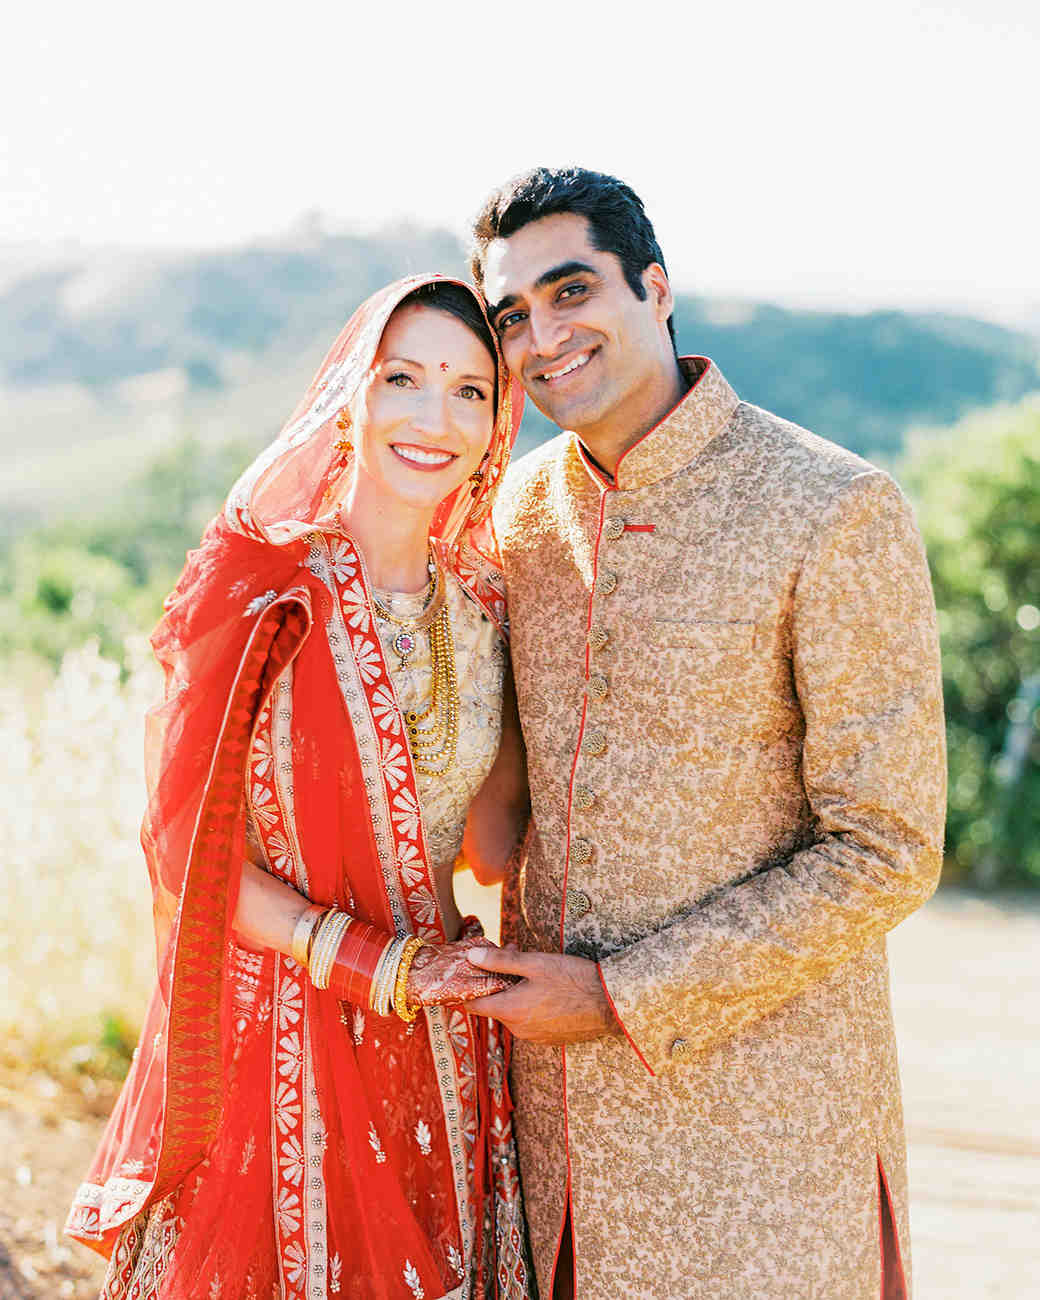 2d376eb21a An Elegant Two-Day Wedding in California with Both an Indian and a Western  Ceremony | Martha Stewart Weddings